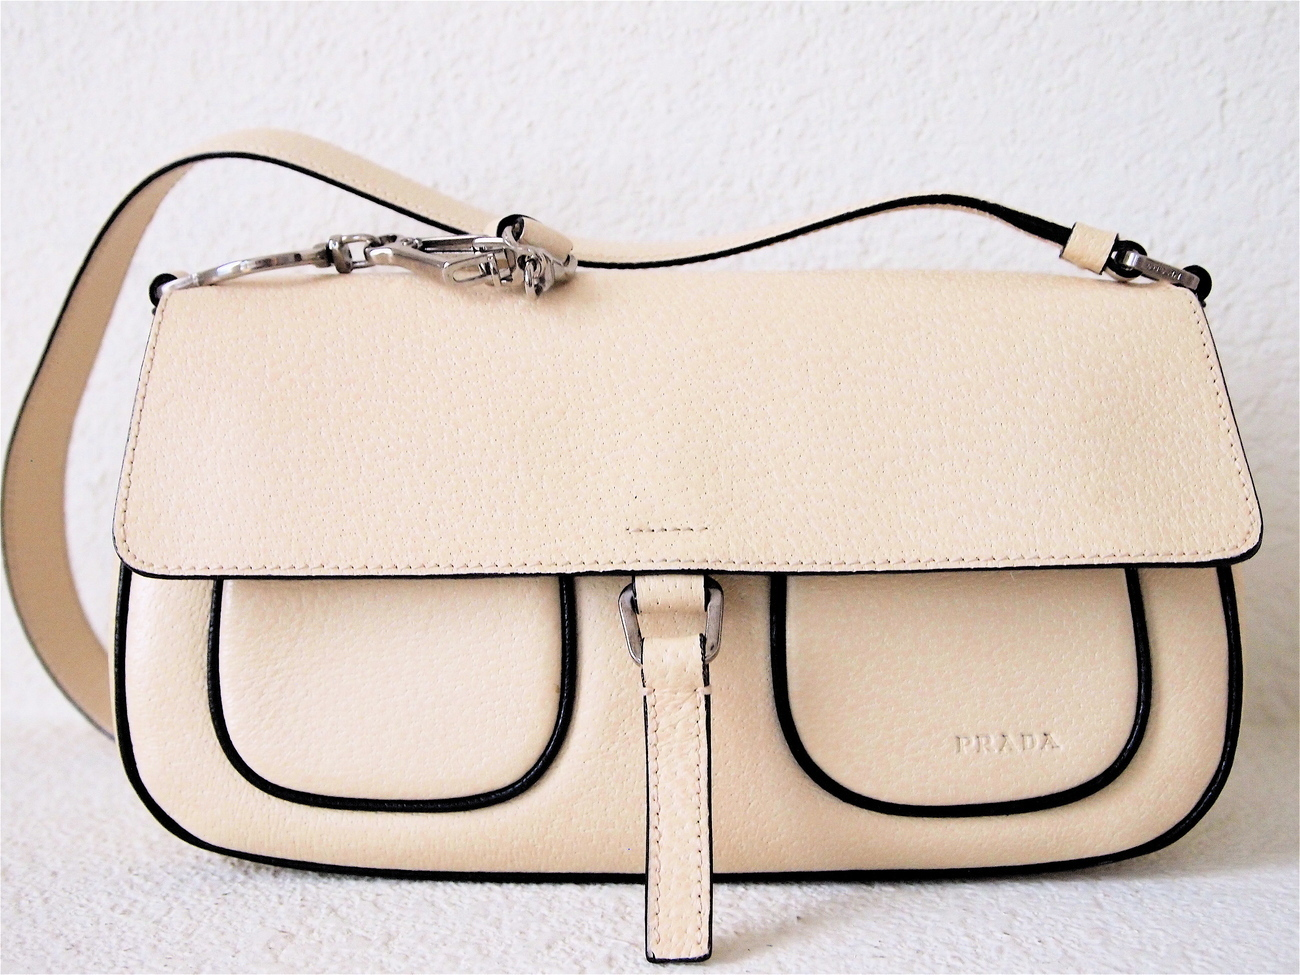 Prada Shoulder Bag in Cream